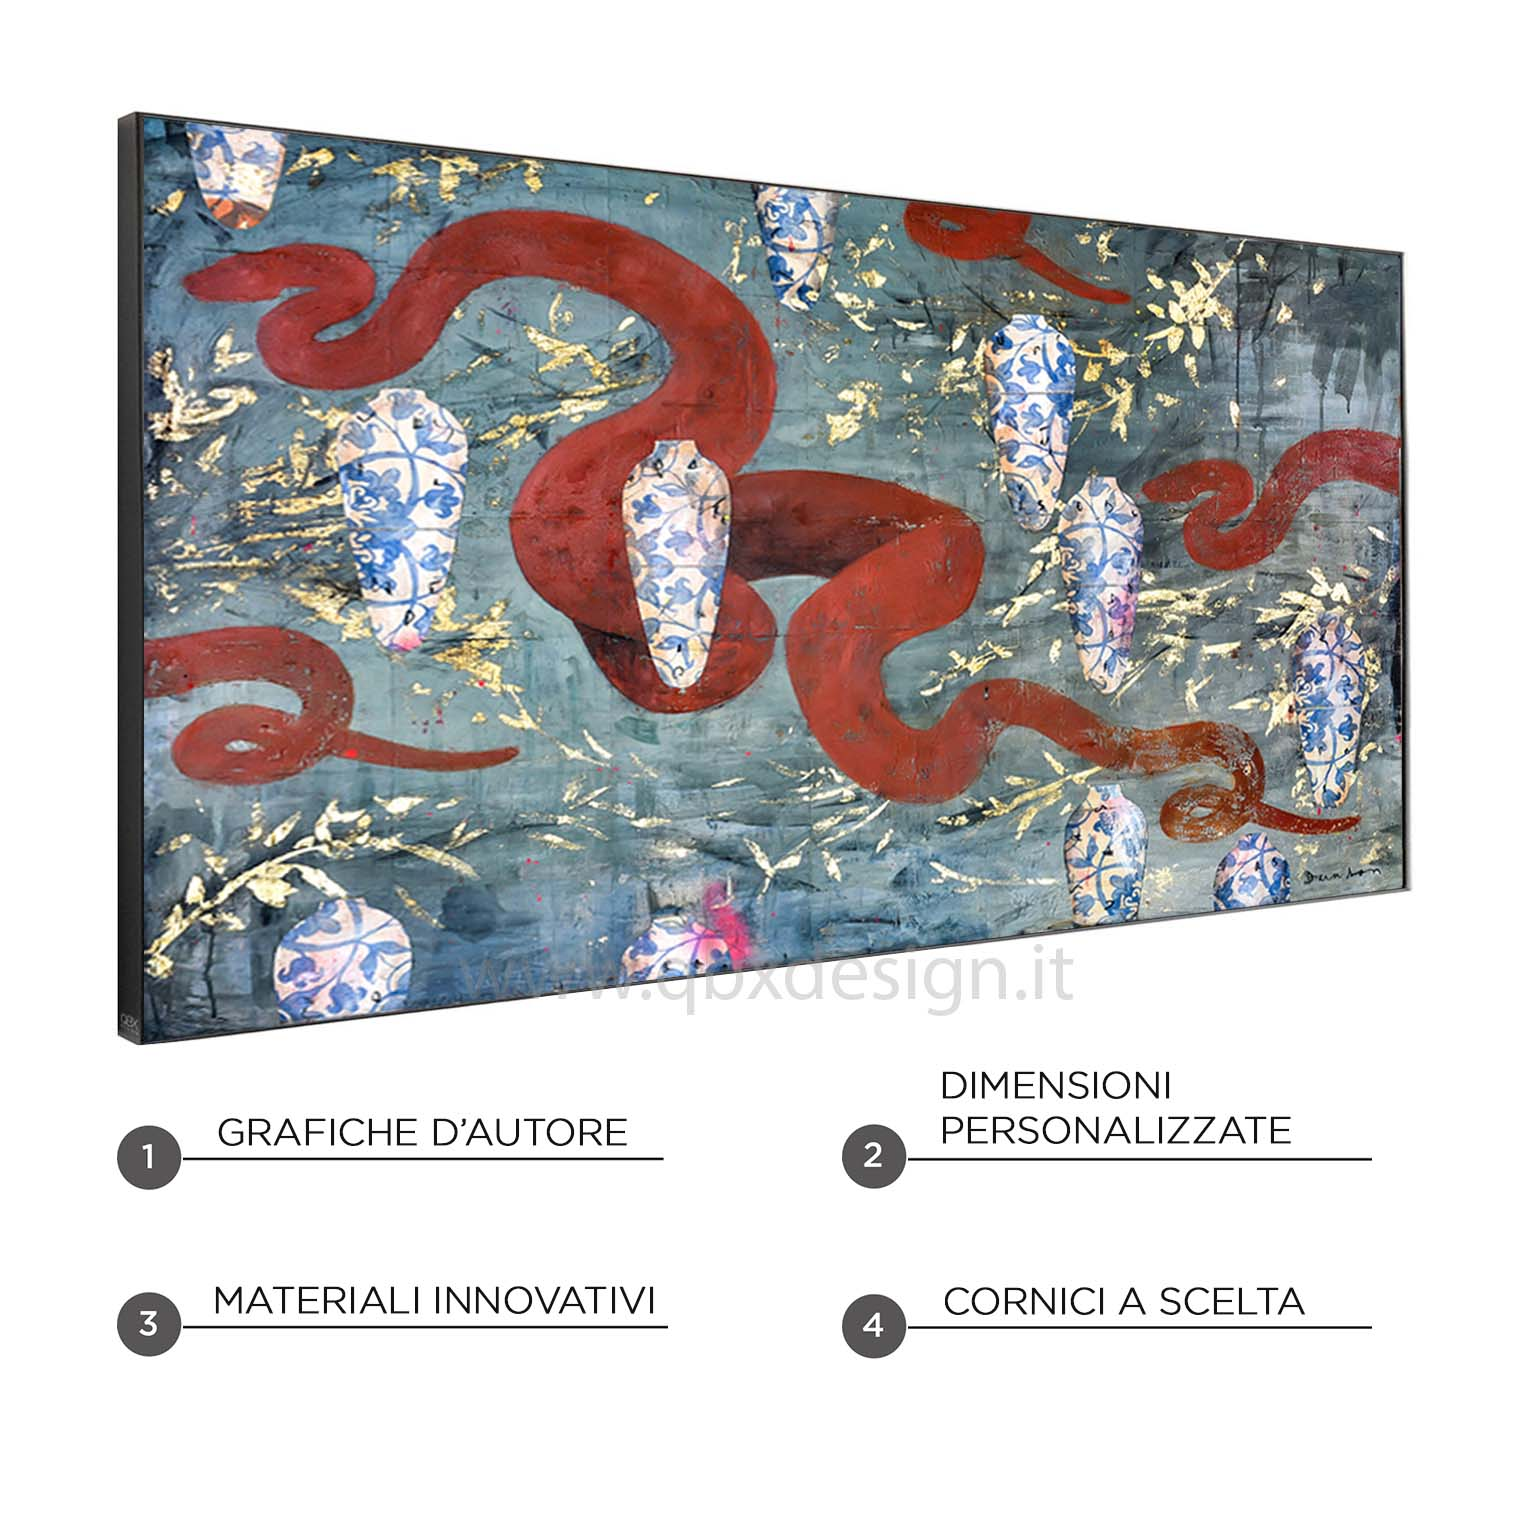 SNAKES AND VASES - QBX DESIGN QUADRO ASTRATTO